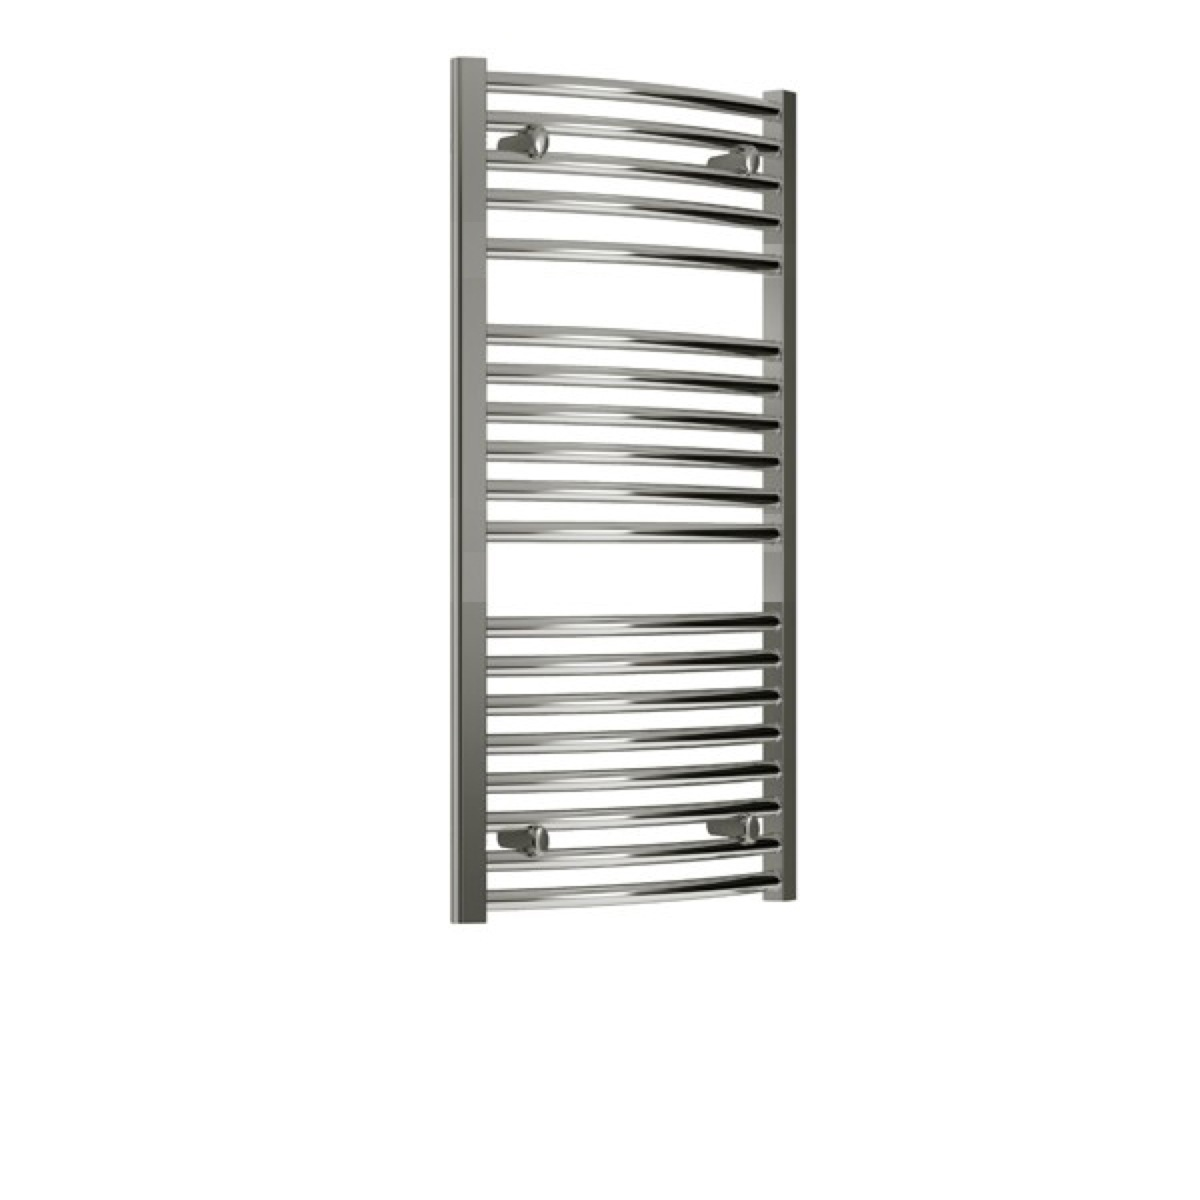 Heated Towel Rails 300mm Wide 1600mm High Towel Radiator